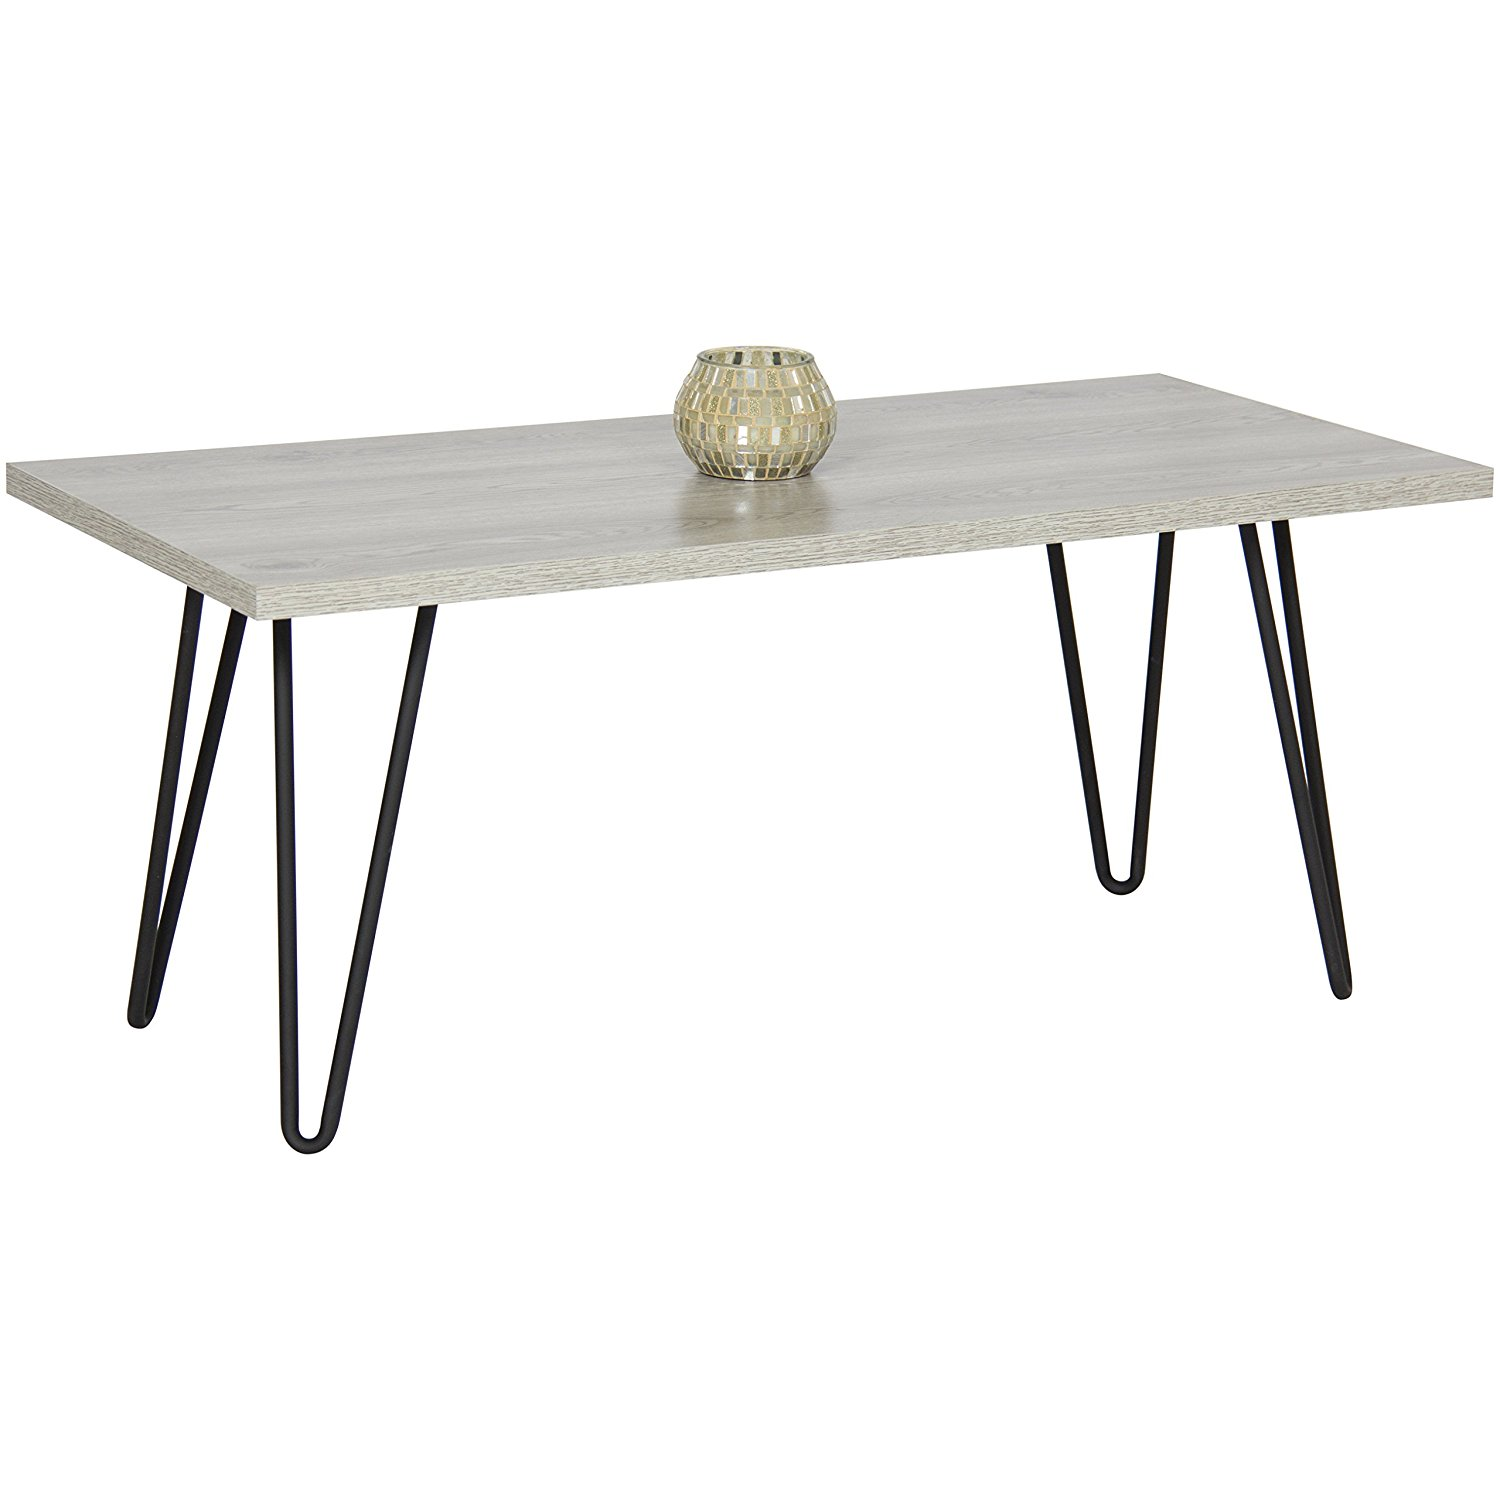 tables coffee side table target inexpensive under set agate octagon that lifts kmart che outdoor gooseneck lamp small storage cupboard chesterfield sofa gray wash end wood and